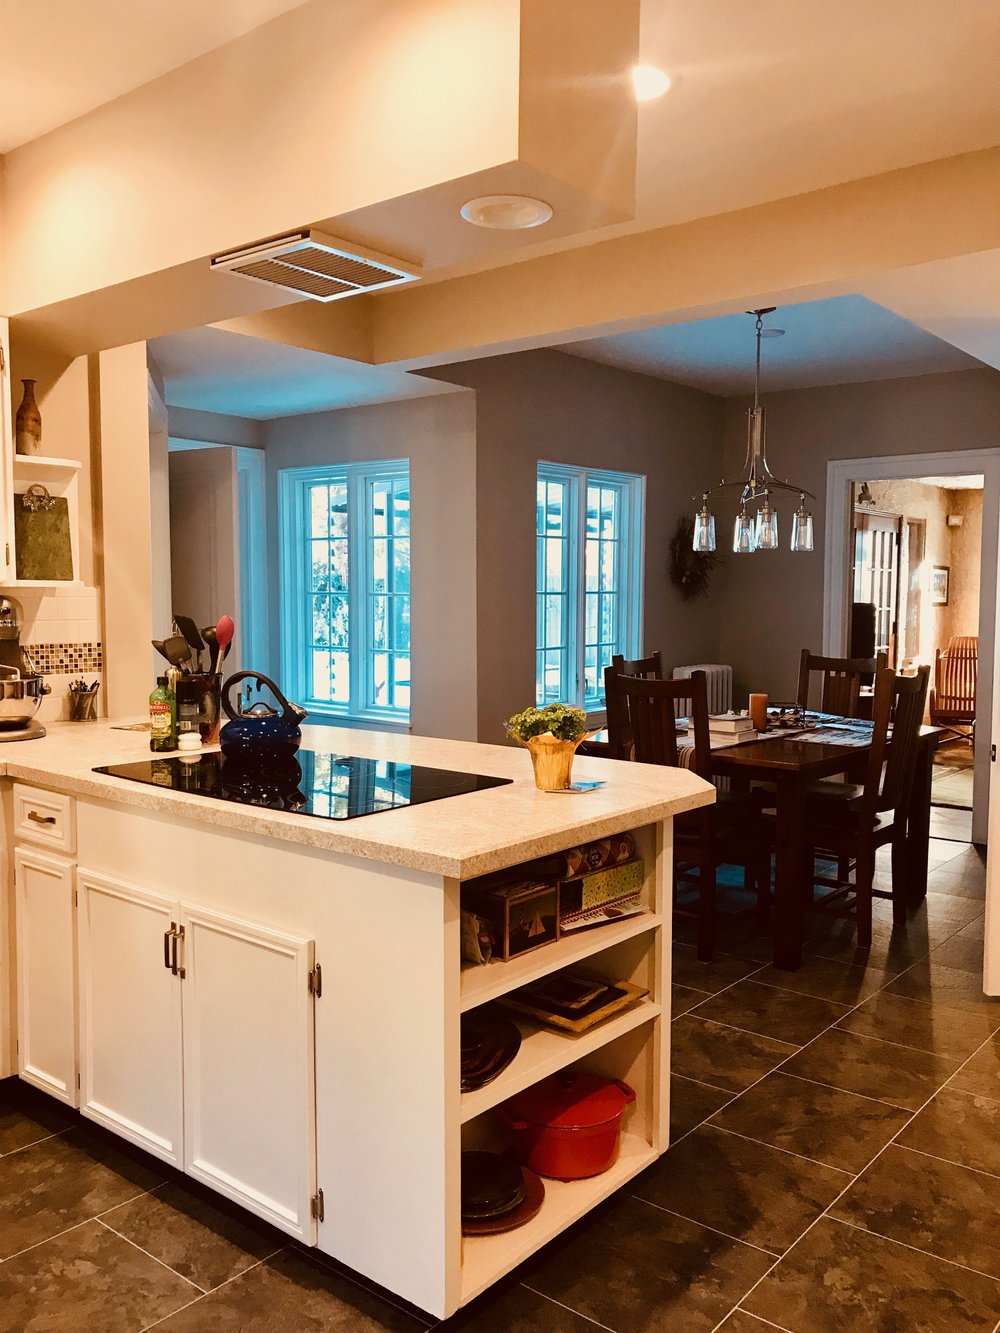 VIEW OF THE 1920'S BREAKFAST NOOK FOUND IN MOST OTTAWA HILLS HOMES